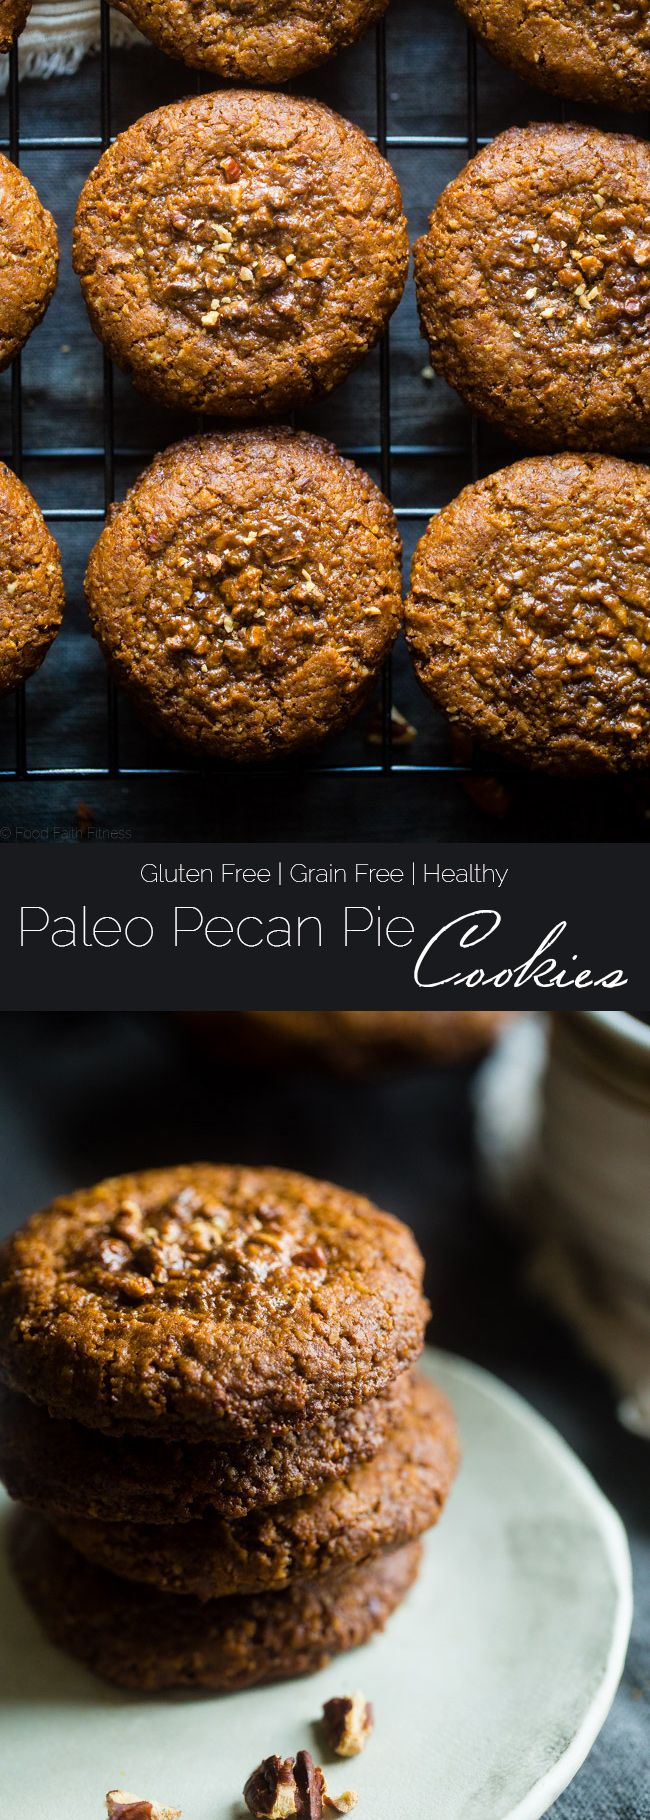 Pecan Pie Paleo Cookies - These easy cookies taste like pecan pie INSIDE a cookie because they have a sticky-sweet, crunchy pecan center! You'll never guess they're gluten free and healthier treat for the holidays! | Foodfaithfitness.com | @FoodFaithFit